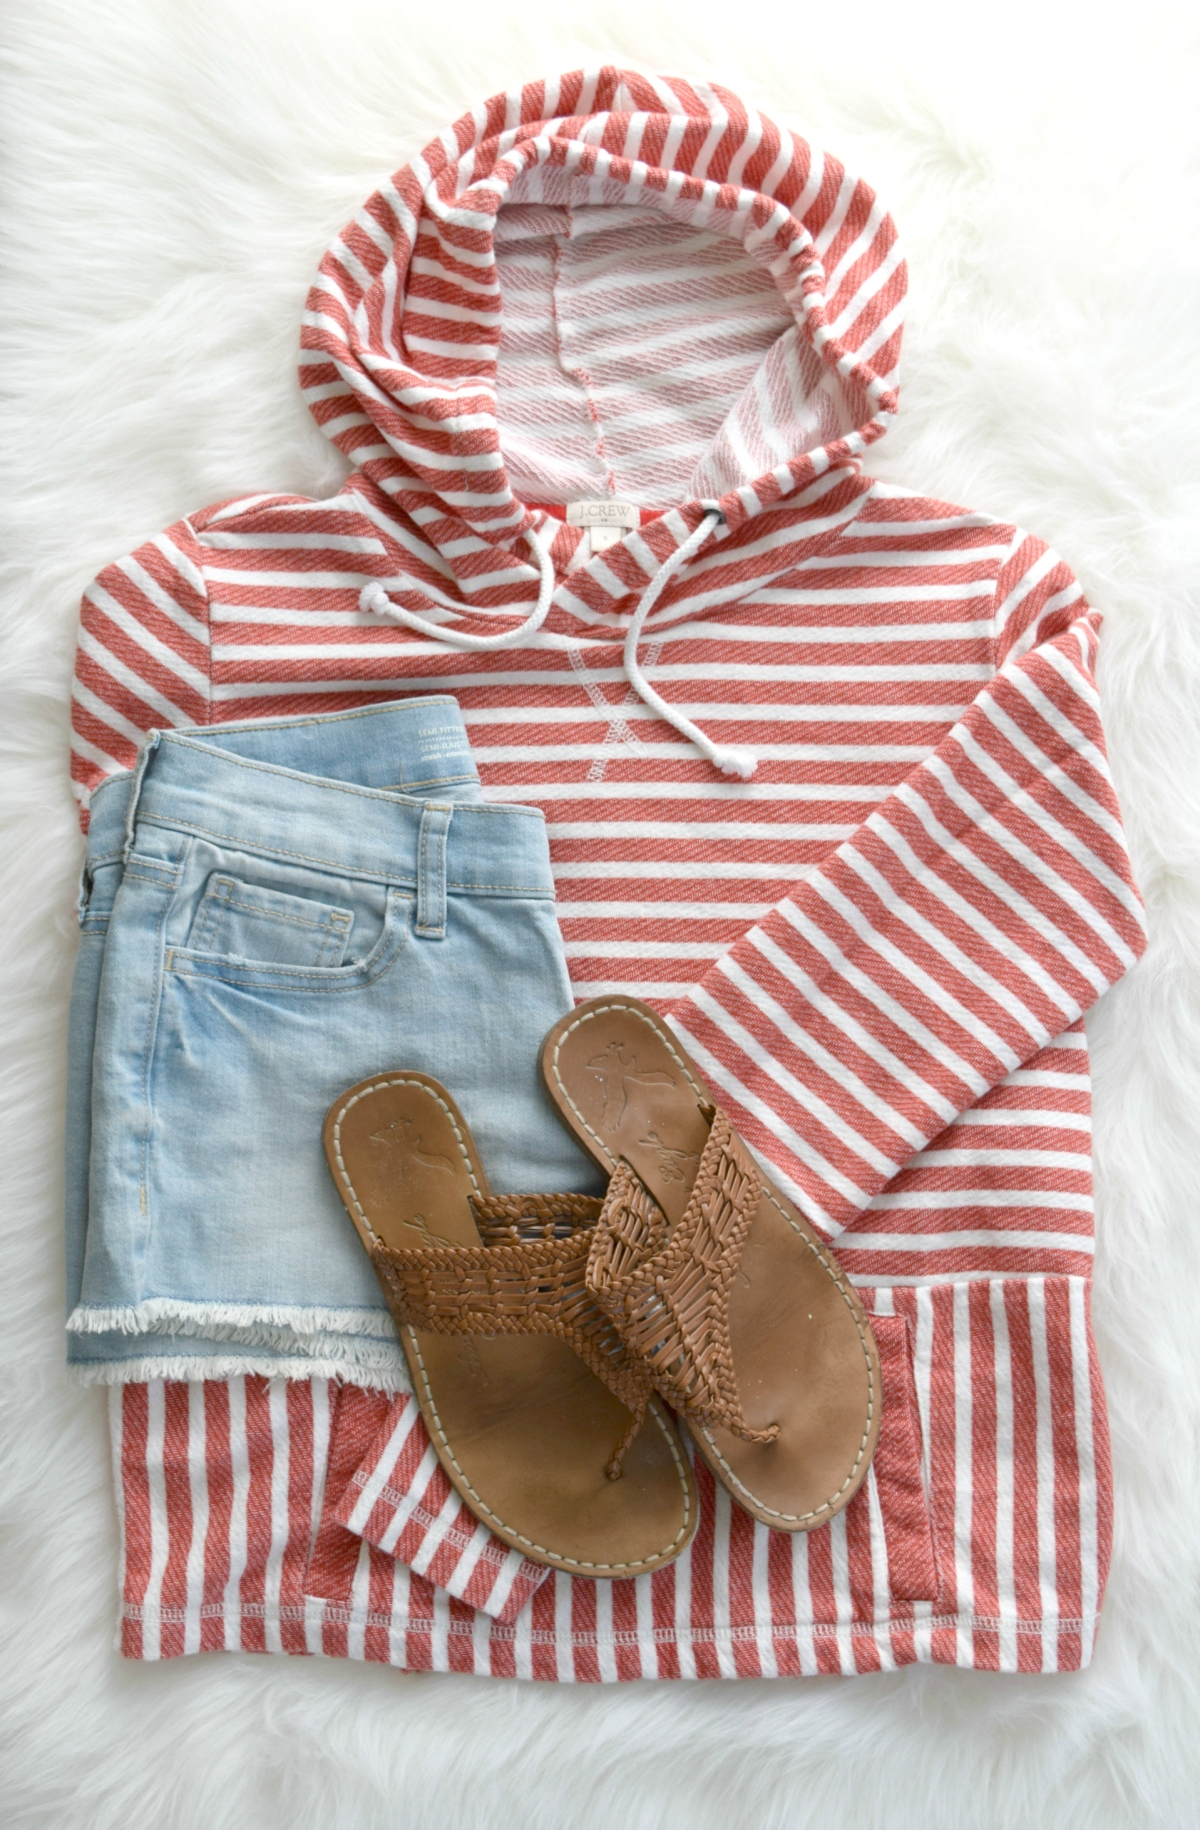 Striped pullover and cutoff shorts for a beachy evening look |www.pearlsandsportsbras.com|